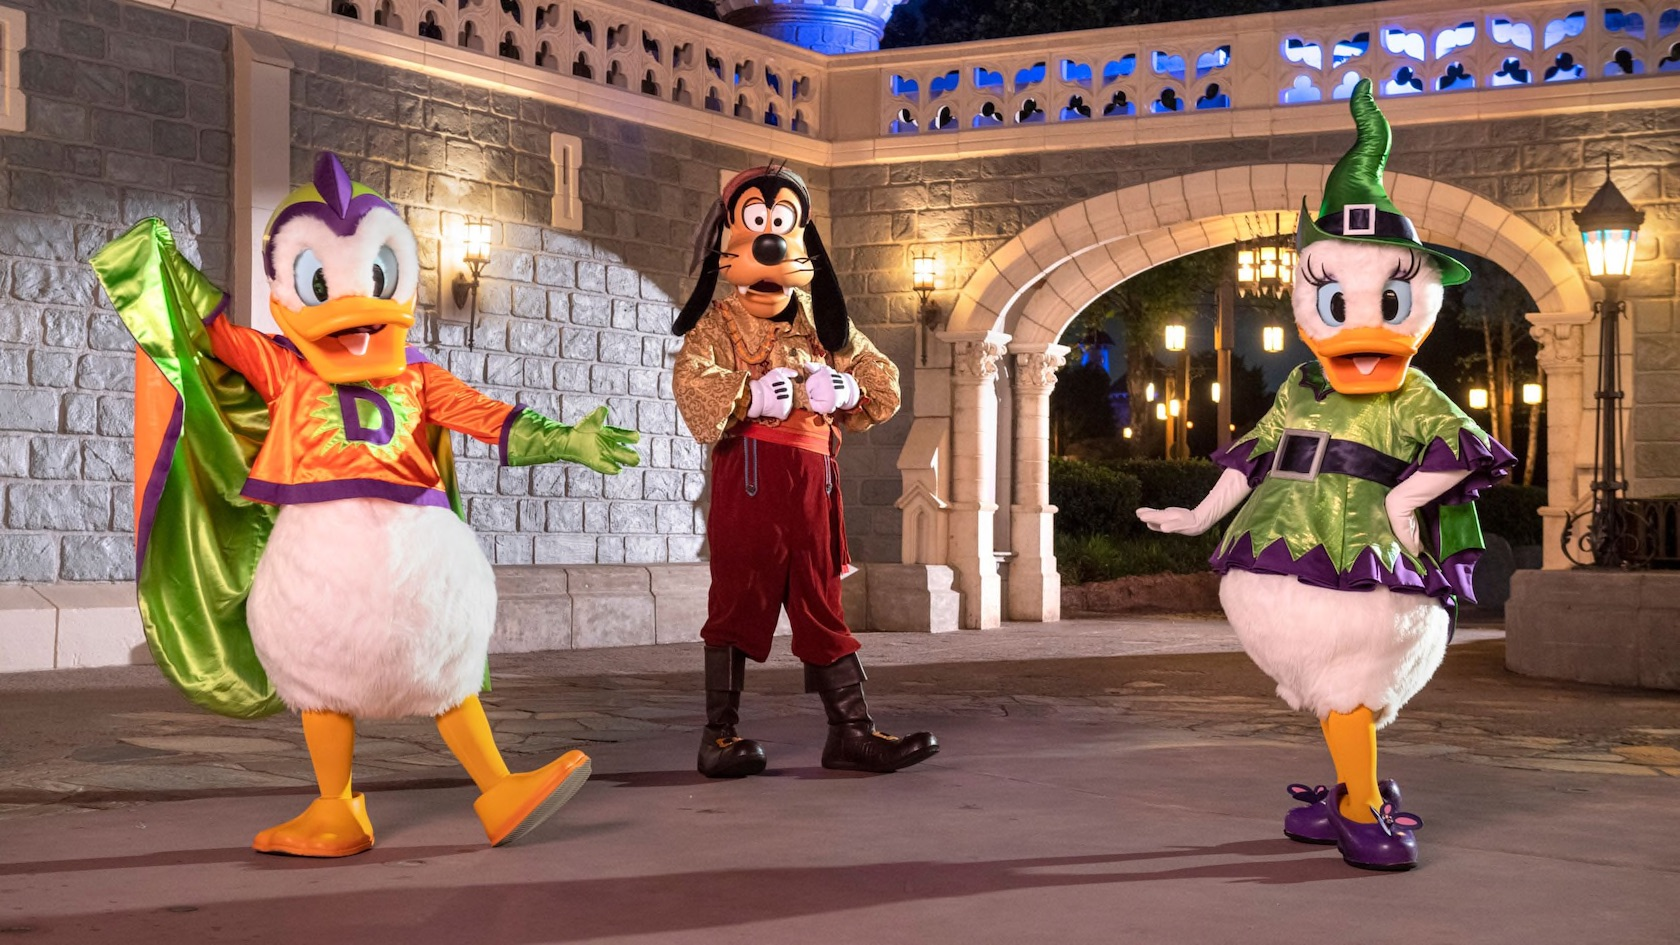 The event officially starts at 7pm, but you can enter magic kingdom before then (around 4pm). Breaking After Hours Boo Bash Replacing Mickey S Not So Scary Halloween Party In Disney World The Disney Food Blog